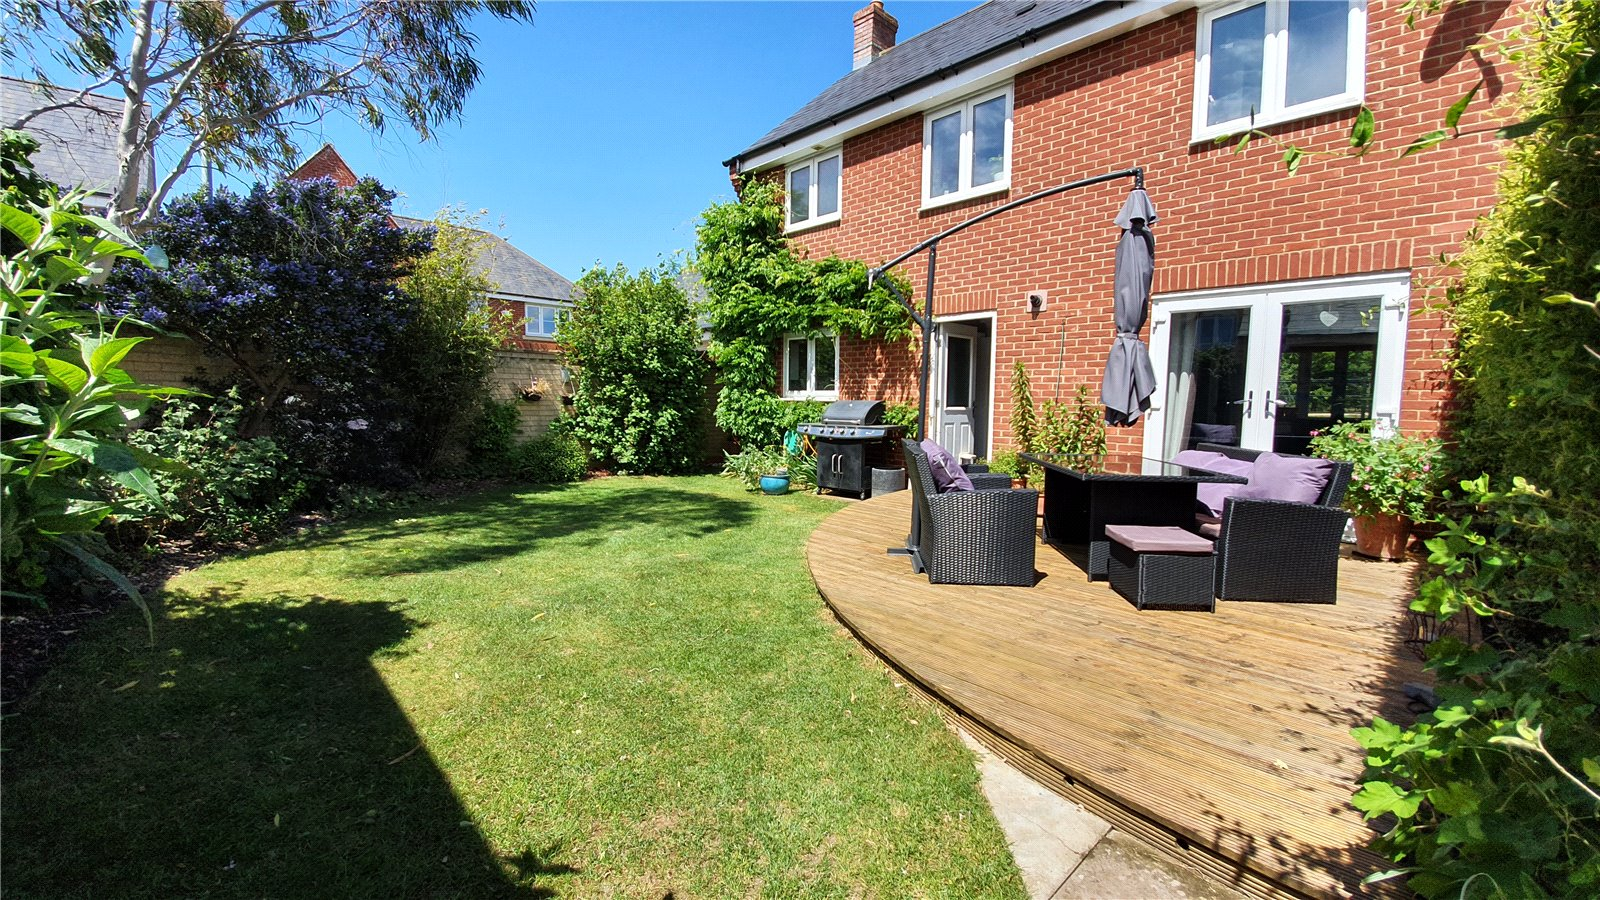 3 bed house for sale in Lannesbury Crescent, St Neots  - Property Image 7